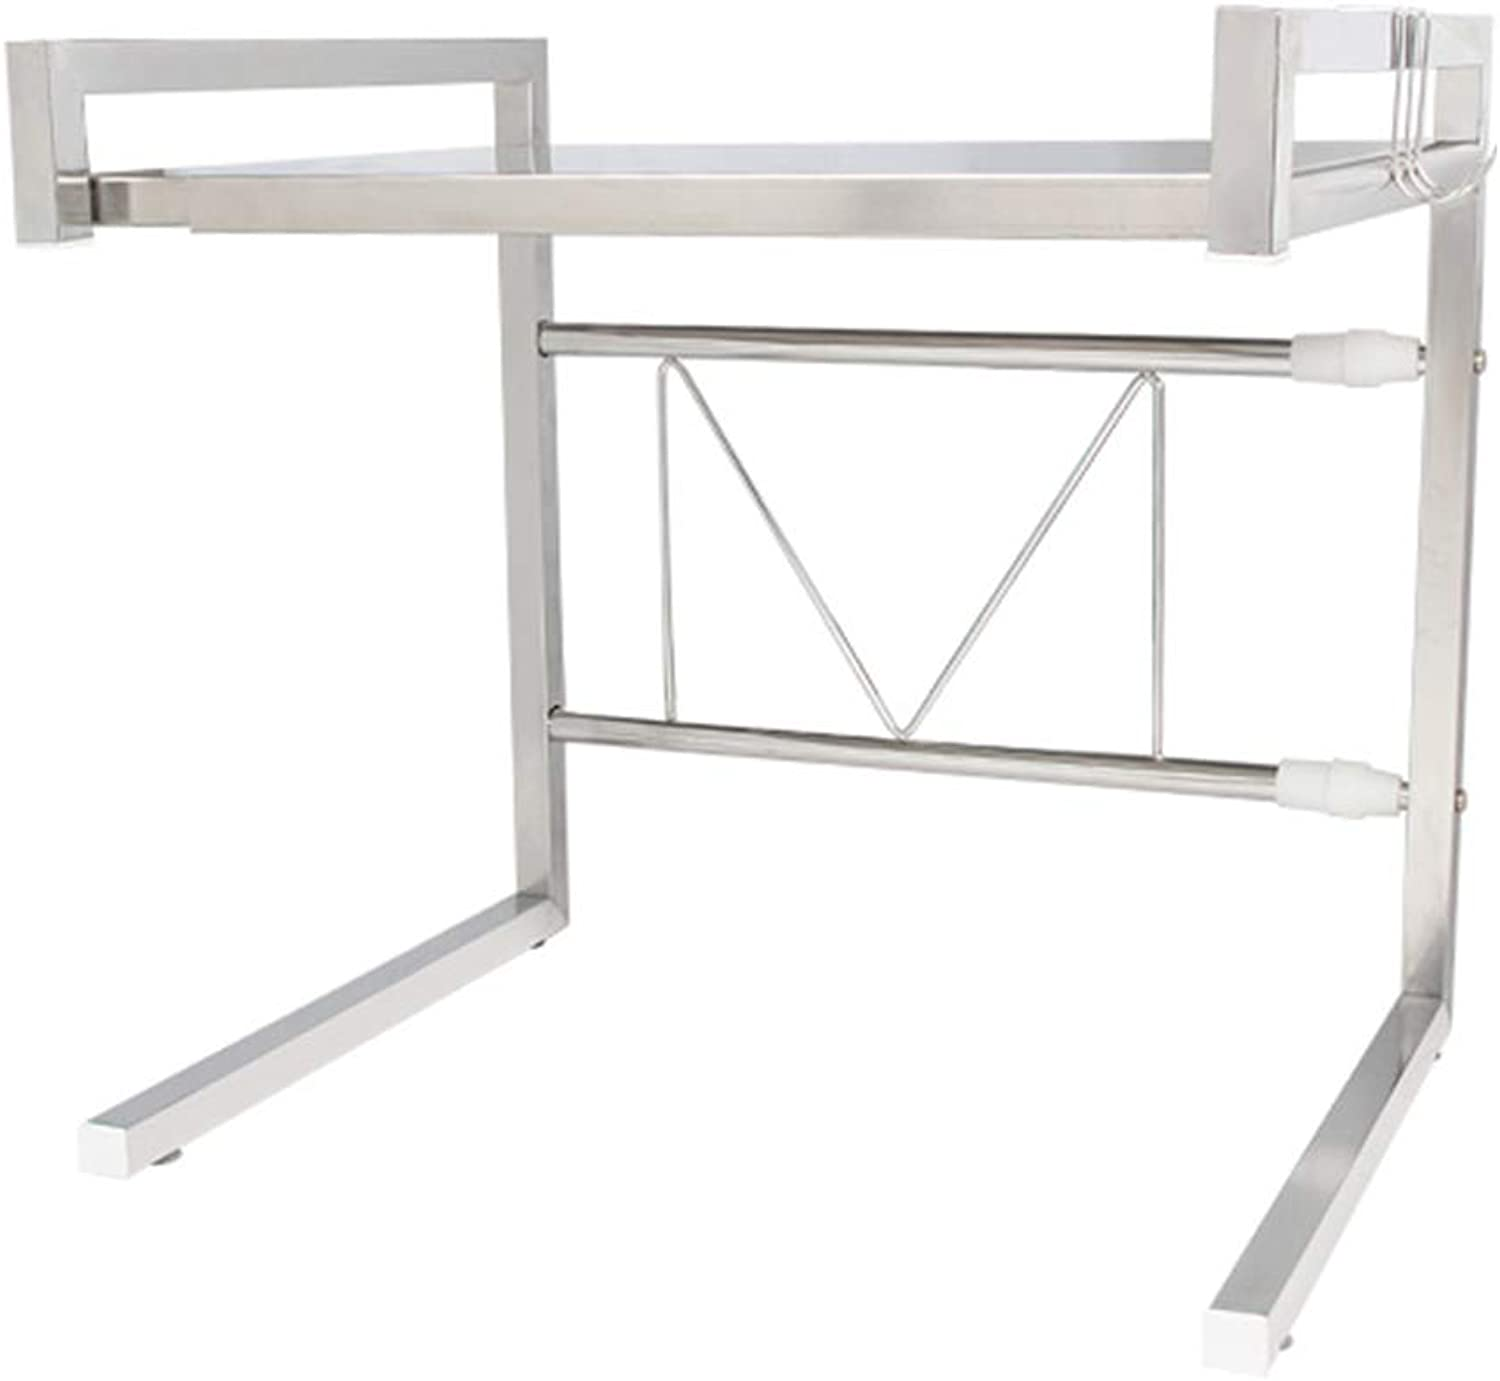 YANZHEN Kitchen Shelf Storage Shelves Floor-Standing Scalable Double The Space Double Layer No Deformation Stainless Steel, 6 colors (color   Steel color, Size   (43-65) x36x42cm)